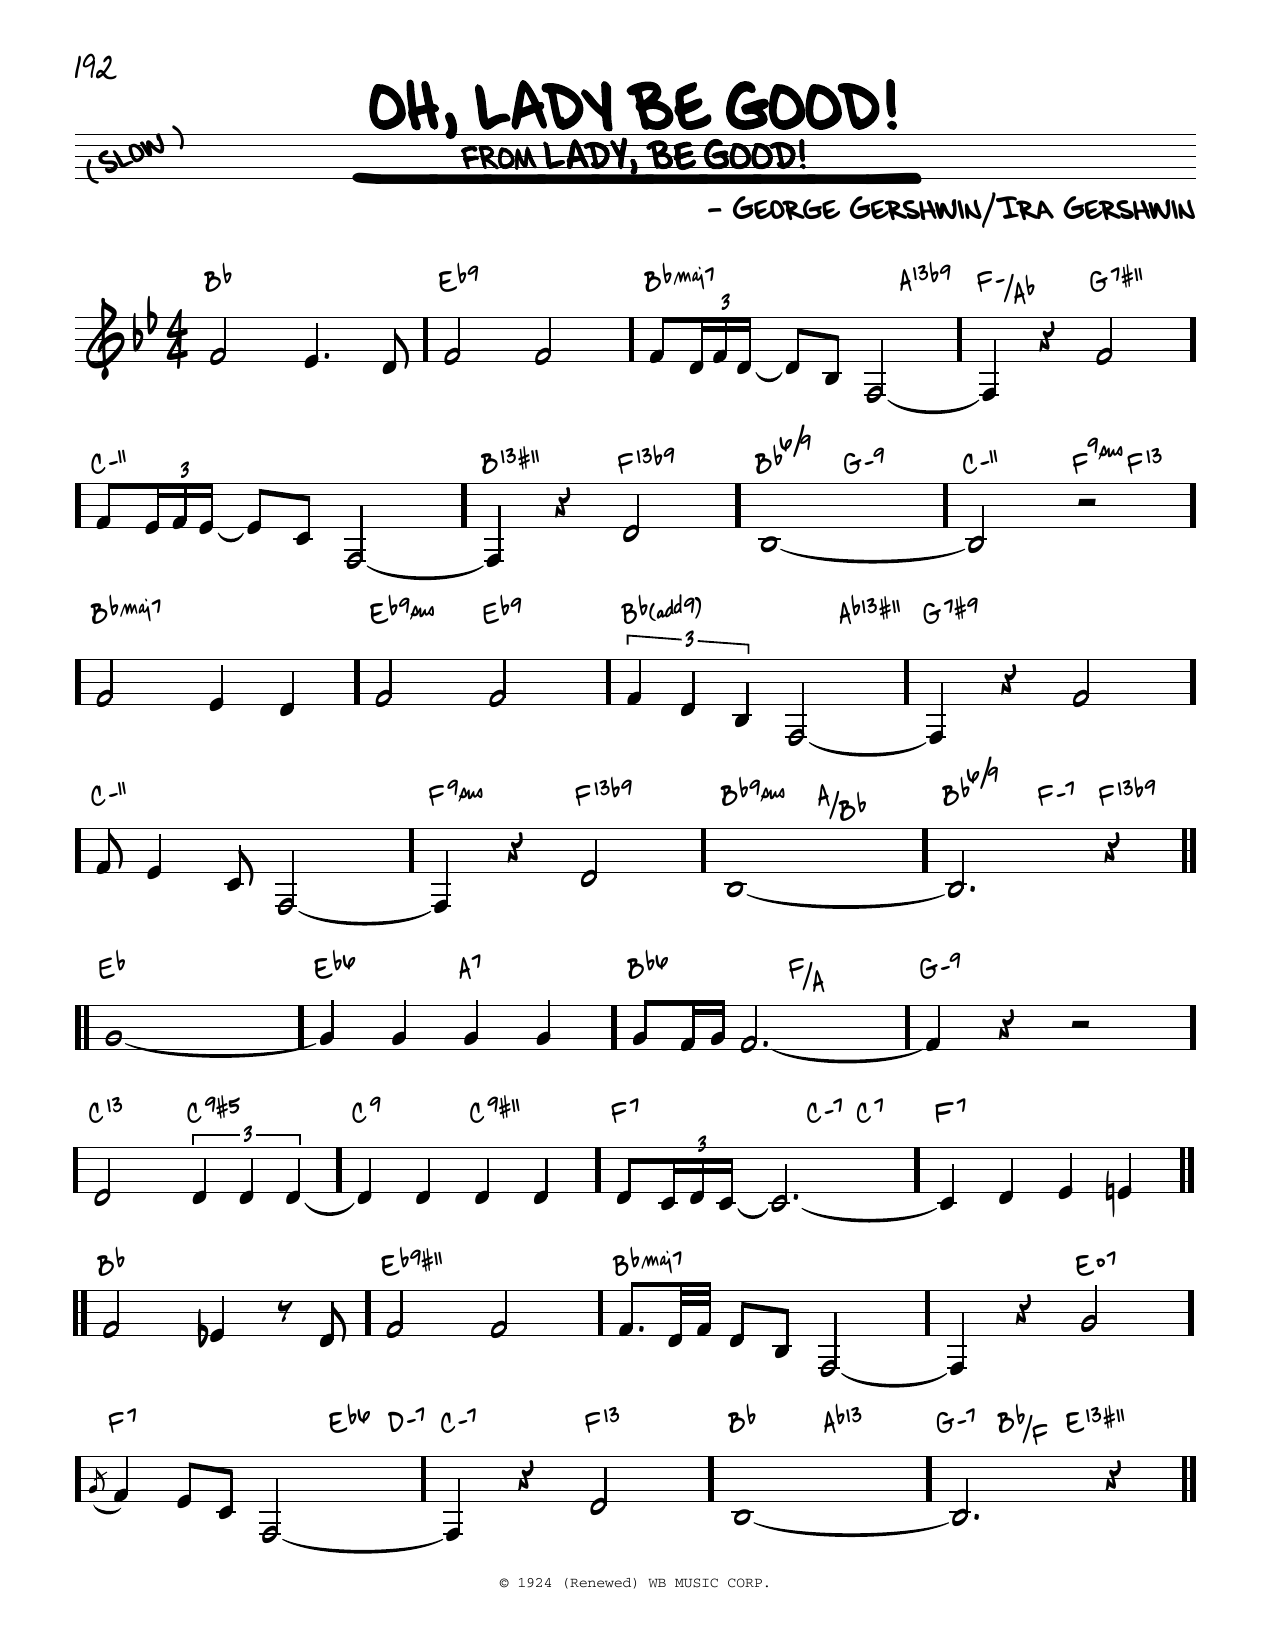 Oh, Lady Be Good! Sheet Music